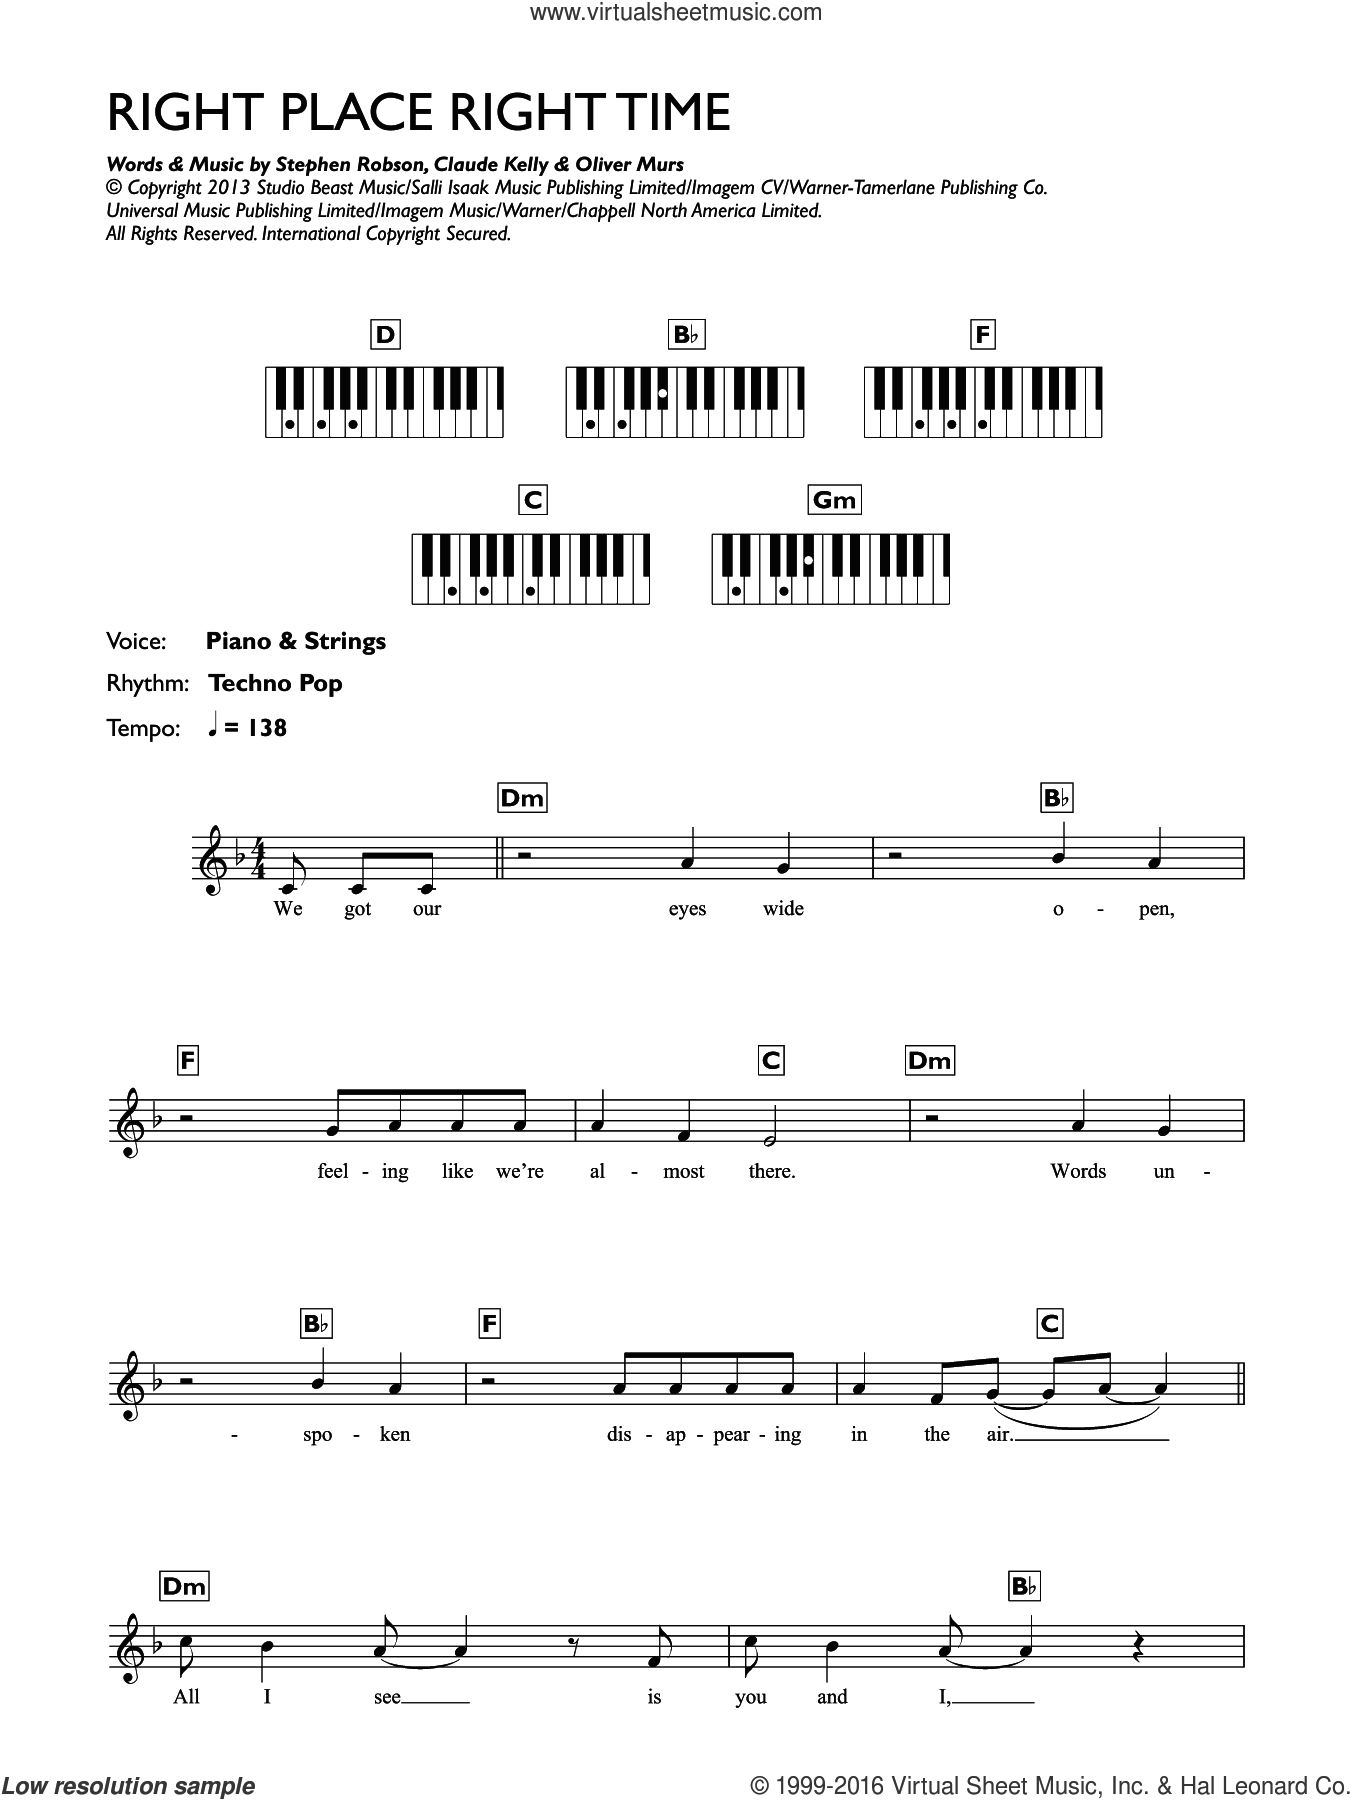 Right Place Right Time sheet music for piano solo (chords, lyrics, melody) by Steve Robson, Claude Kelly and Oliver Murs. Score Image Preview.